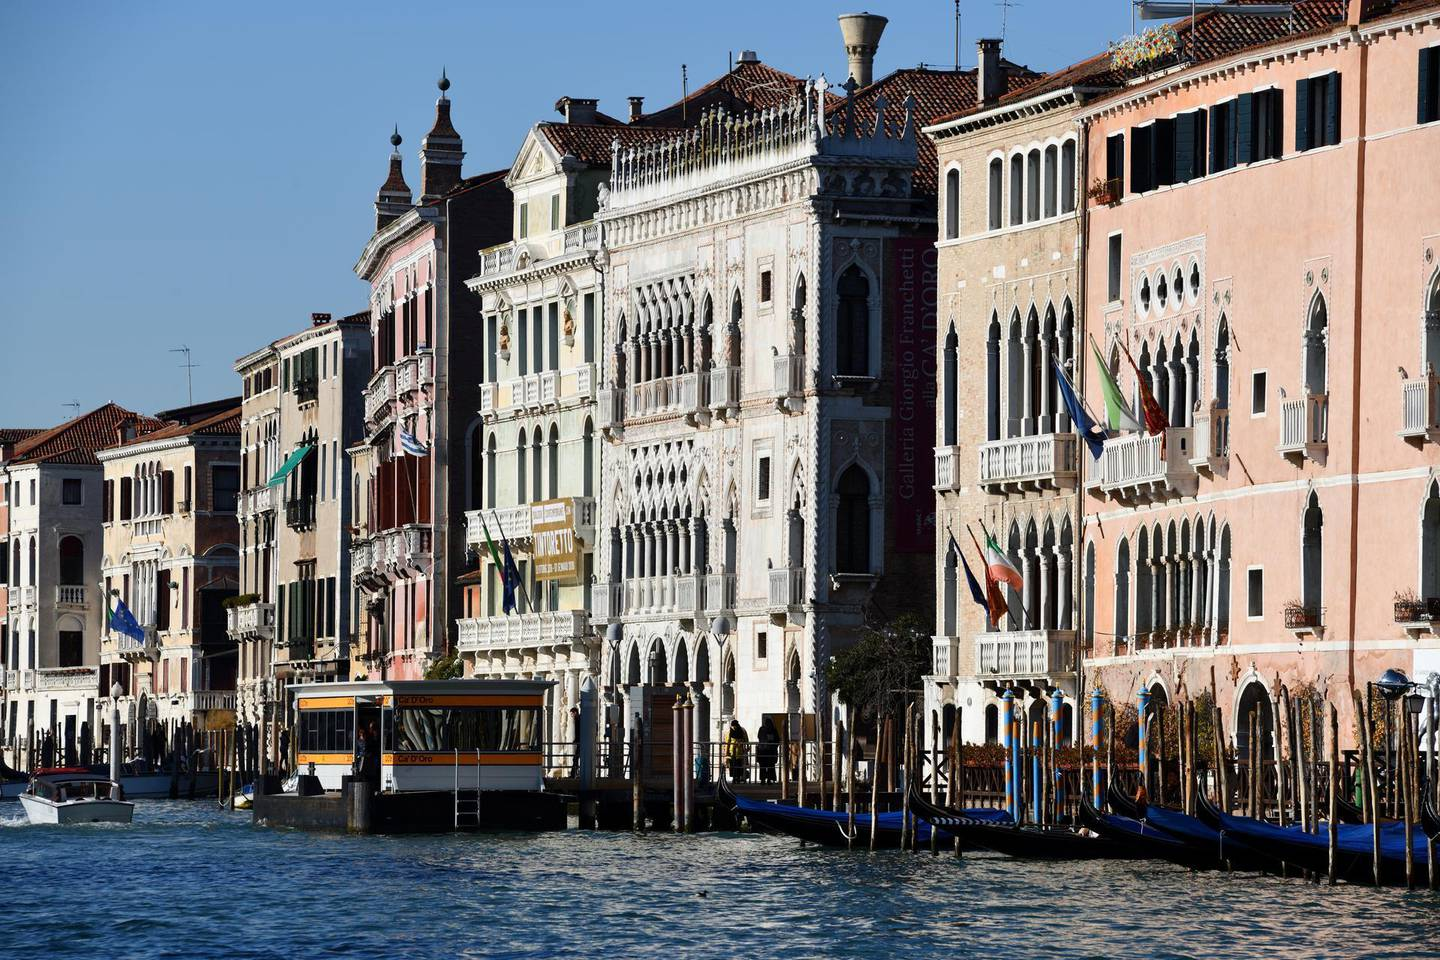 ITALY, VENICE - FEBRUARY 08 : Venice is a city in northeastern Italy and the capital of the Veneto region. It is situated across a group of 118 small islands that are separated by canals. Grand Canal and palaces in Venice on February 08, 2019, Italy. (Photo by Frédéric Soltan/Corbis via Getty Images)